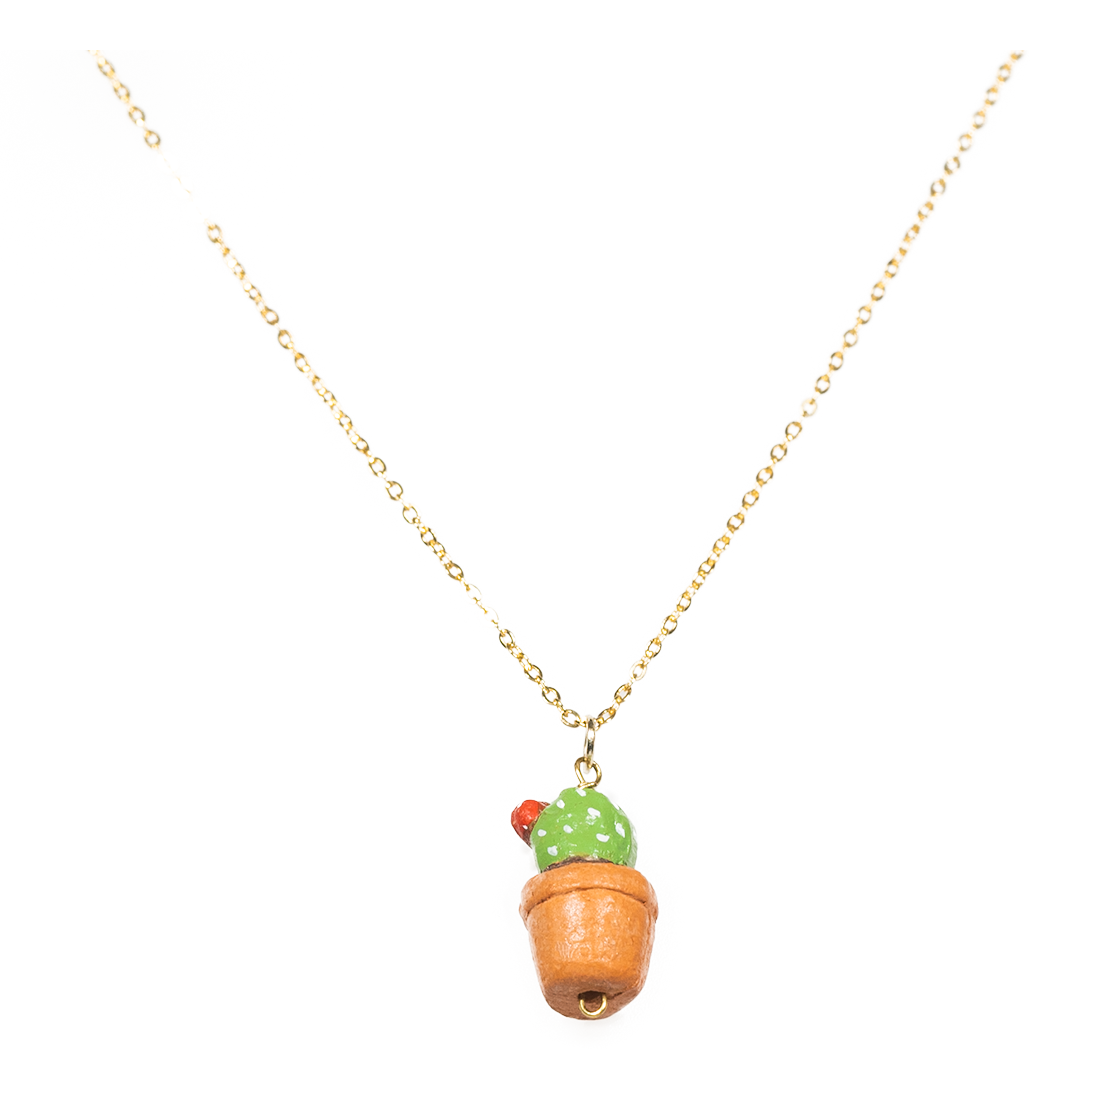 Potted cactus handmade necklace